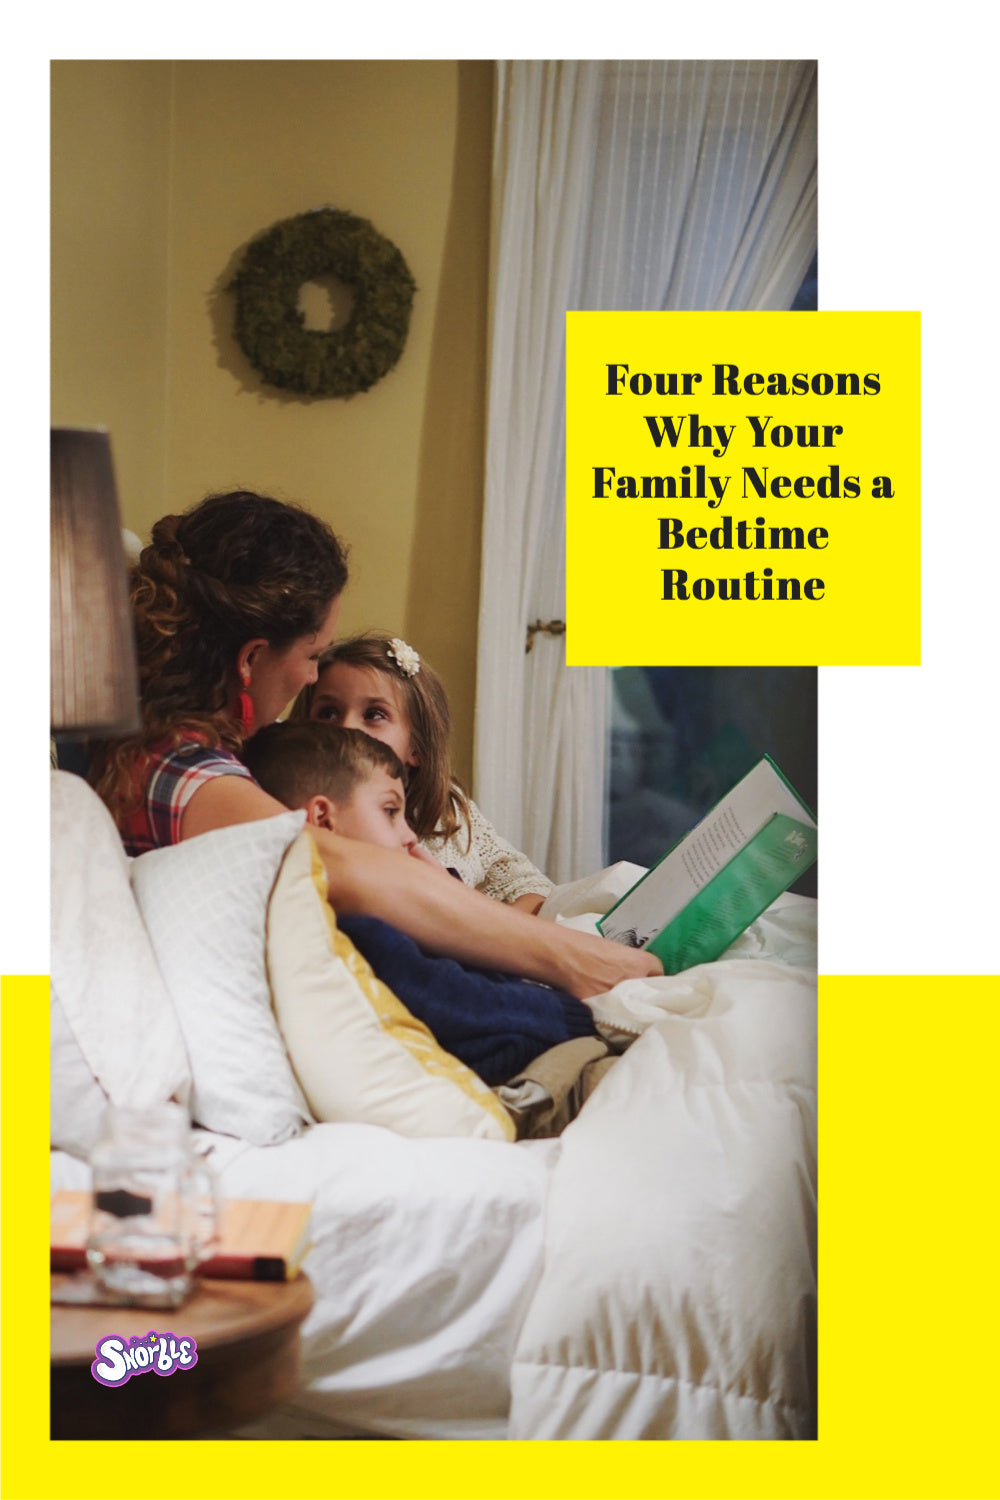 """Image contains a photo with a white rectangular border that turns yellow on the bottom third. On the right-hand side, sitting on the border and part of the photo, there is a yellow block with black text that says """"Four Reasons Why Your Family Needs a Bedtime Routine"""". In the bottom left-hand side, there is a logo that says """"Snorble"""" in a bubbly font."""